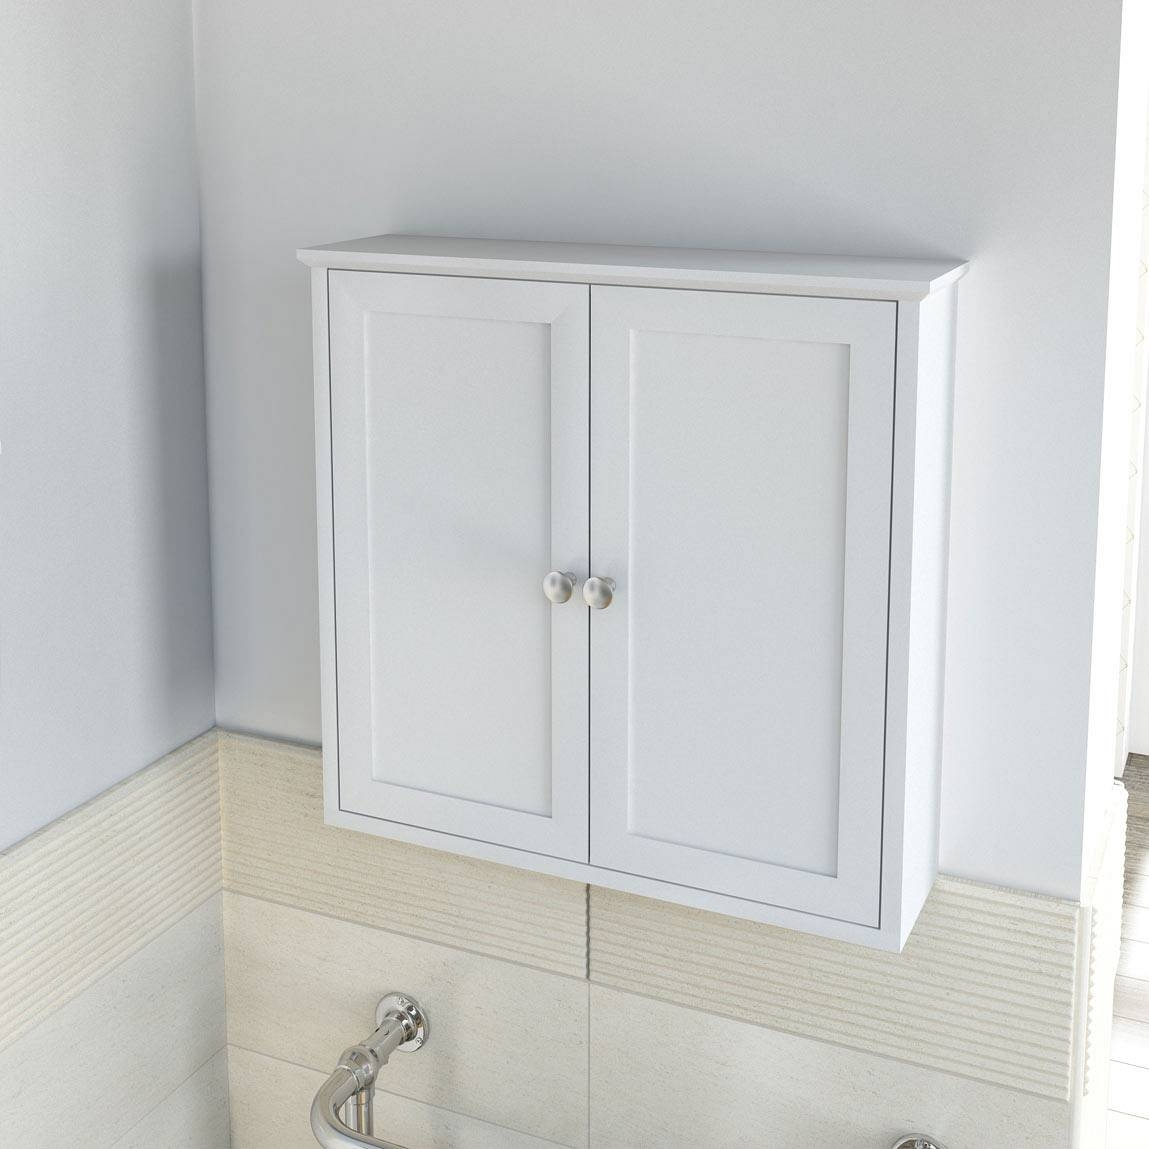 Bathroom Wall Mounted Cabinets White